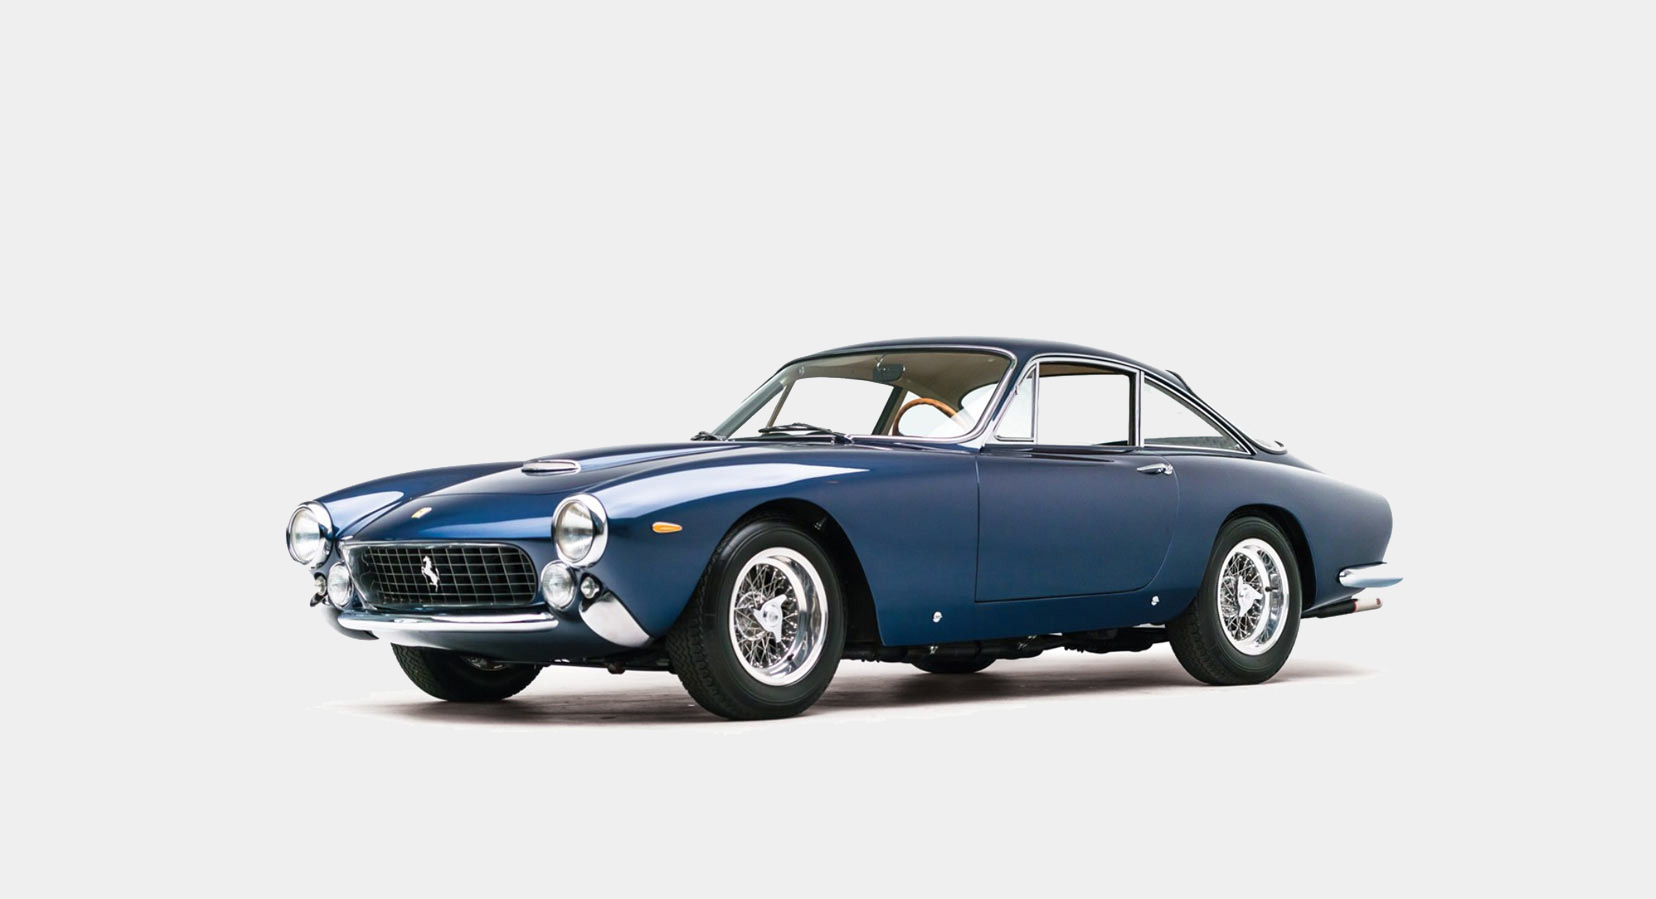 Classic Car Find of the Week: 1964 Ferrari 250 GT/L Berlinetta Lusso